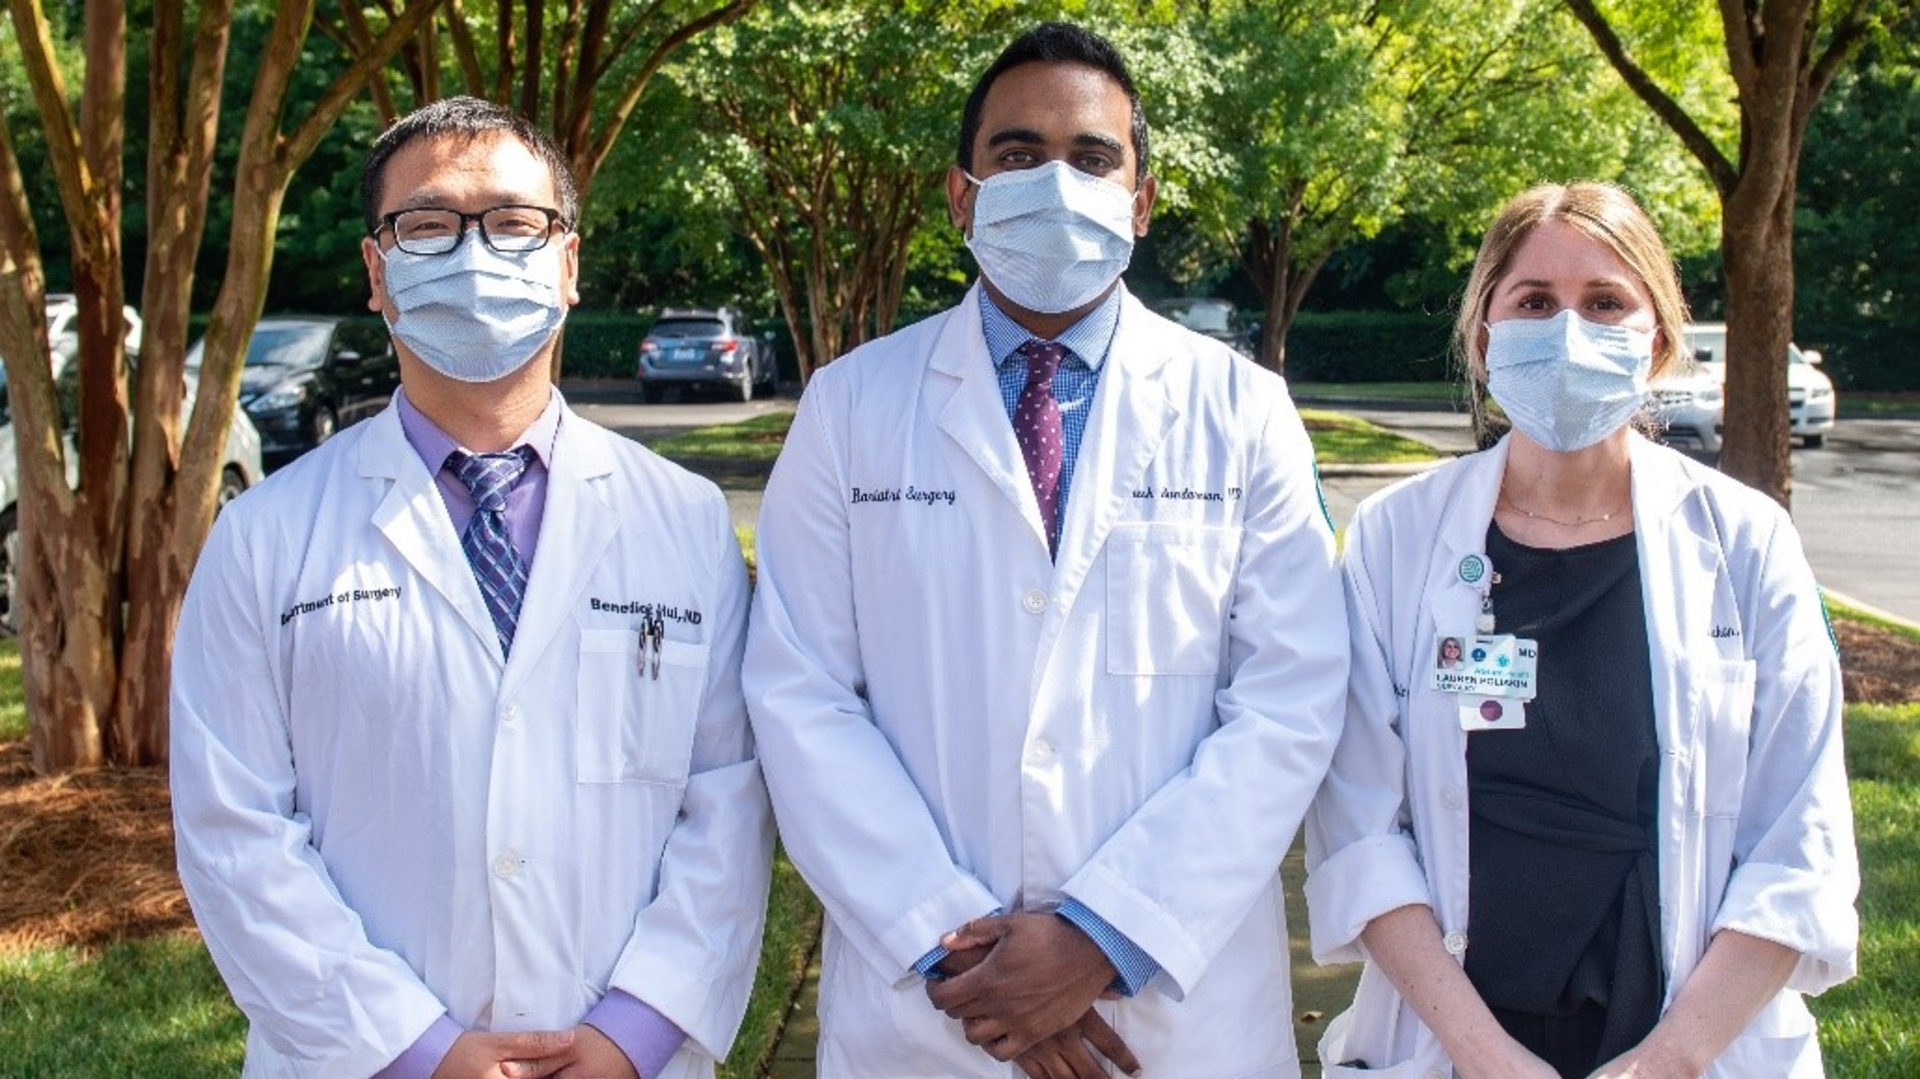 More than 10 physicians from Atrium Health took the virtual stage to present their work at the 2020 Society of American Gastrointestinal and Endoscopic Surgeons (SAGES) Conference on August 11-13, 2020.